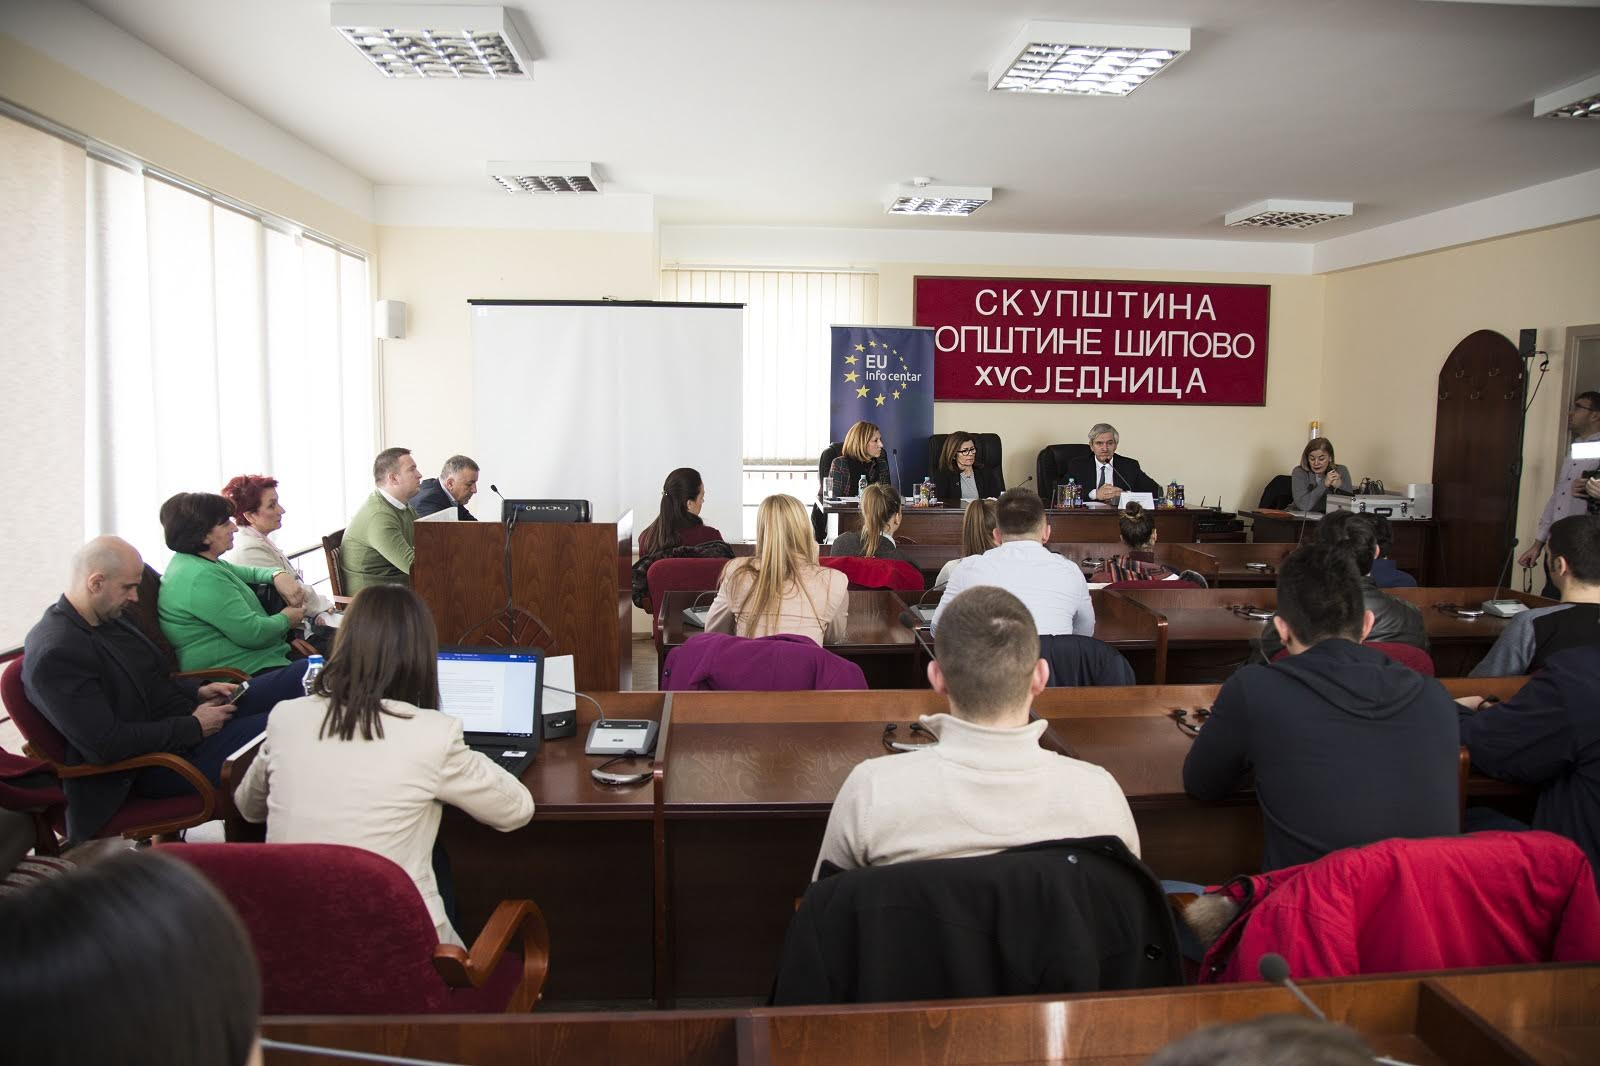 Citizens of Šipovo talked with ambassadors